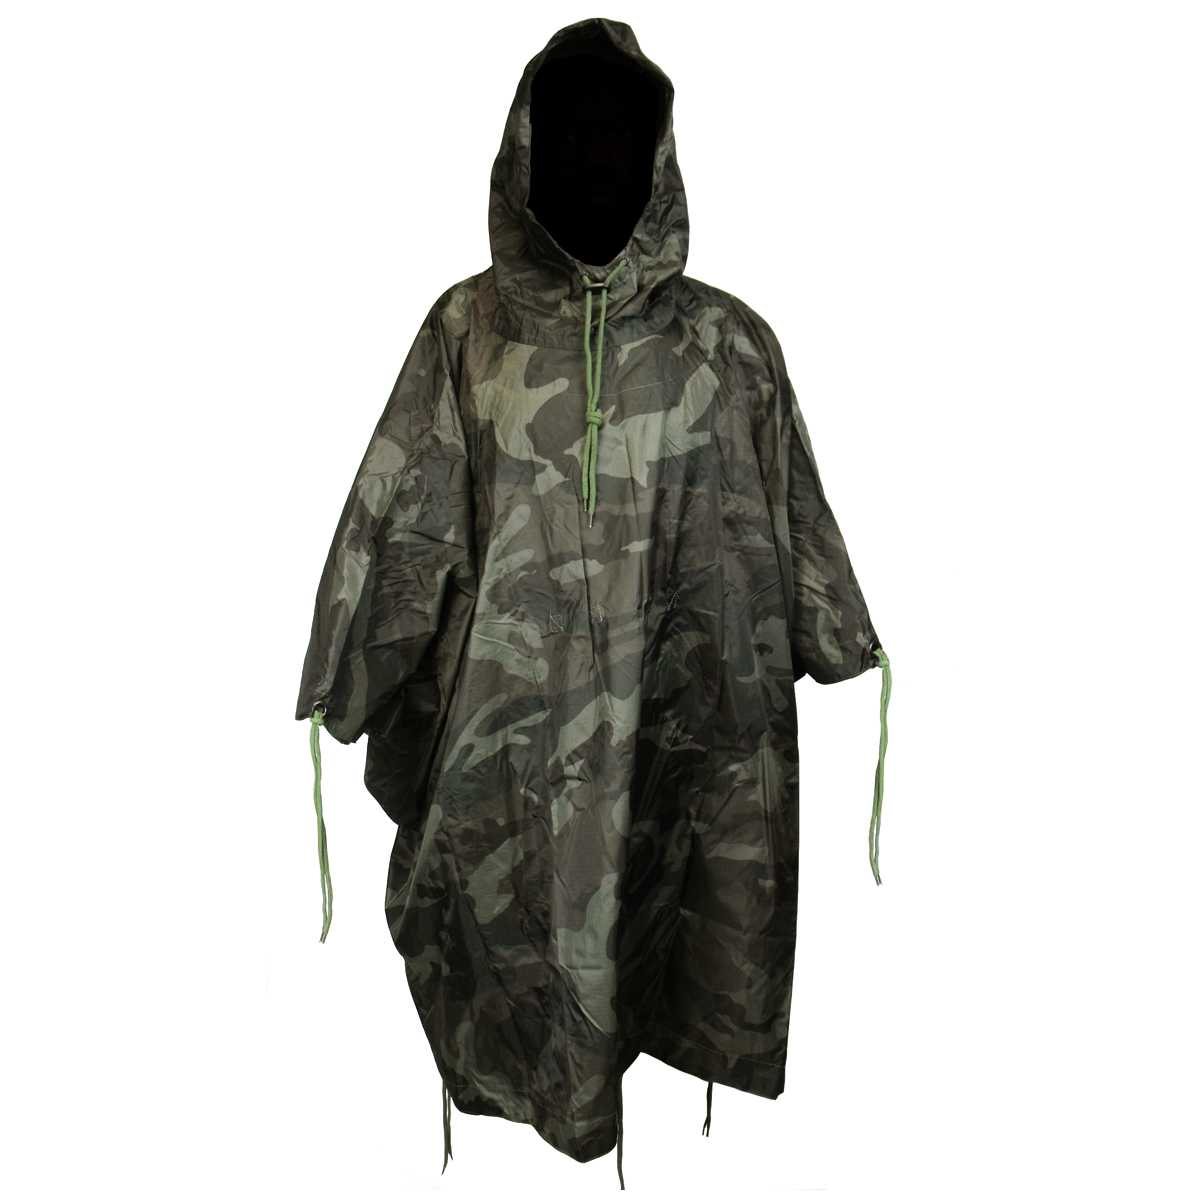 Vinyl Reuseable Rainy Weather Poncho Military Woodland CAMO Style Hiking Hunting